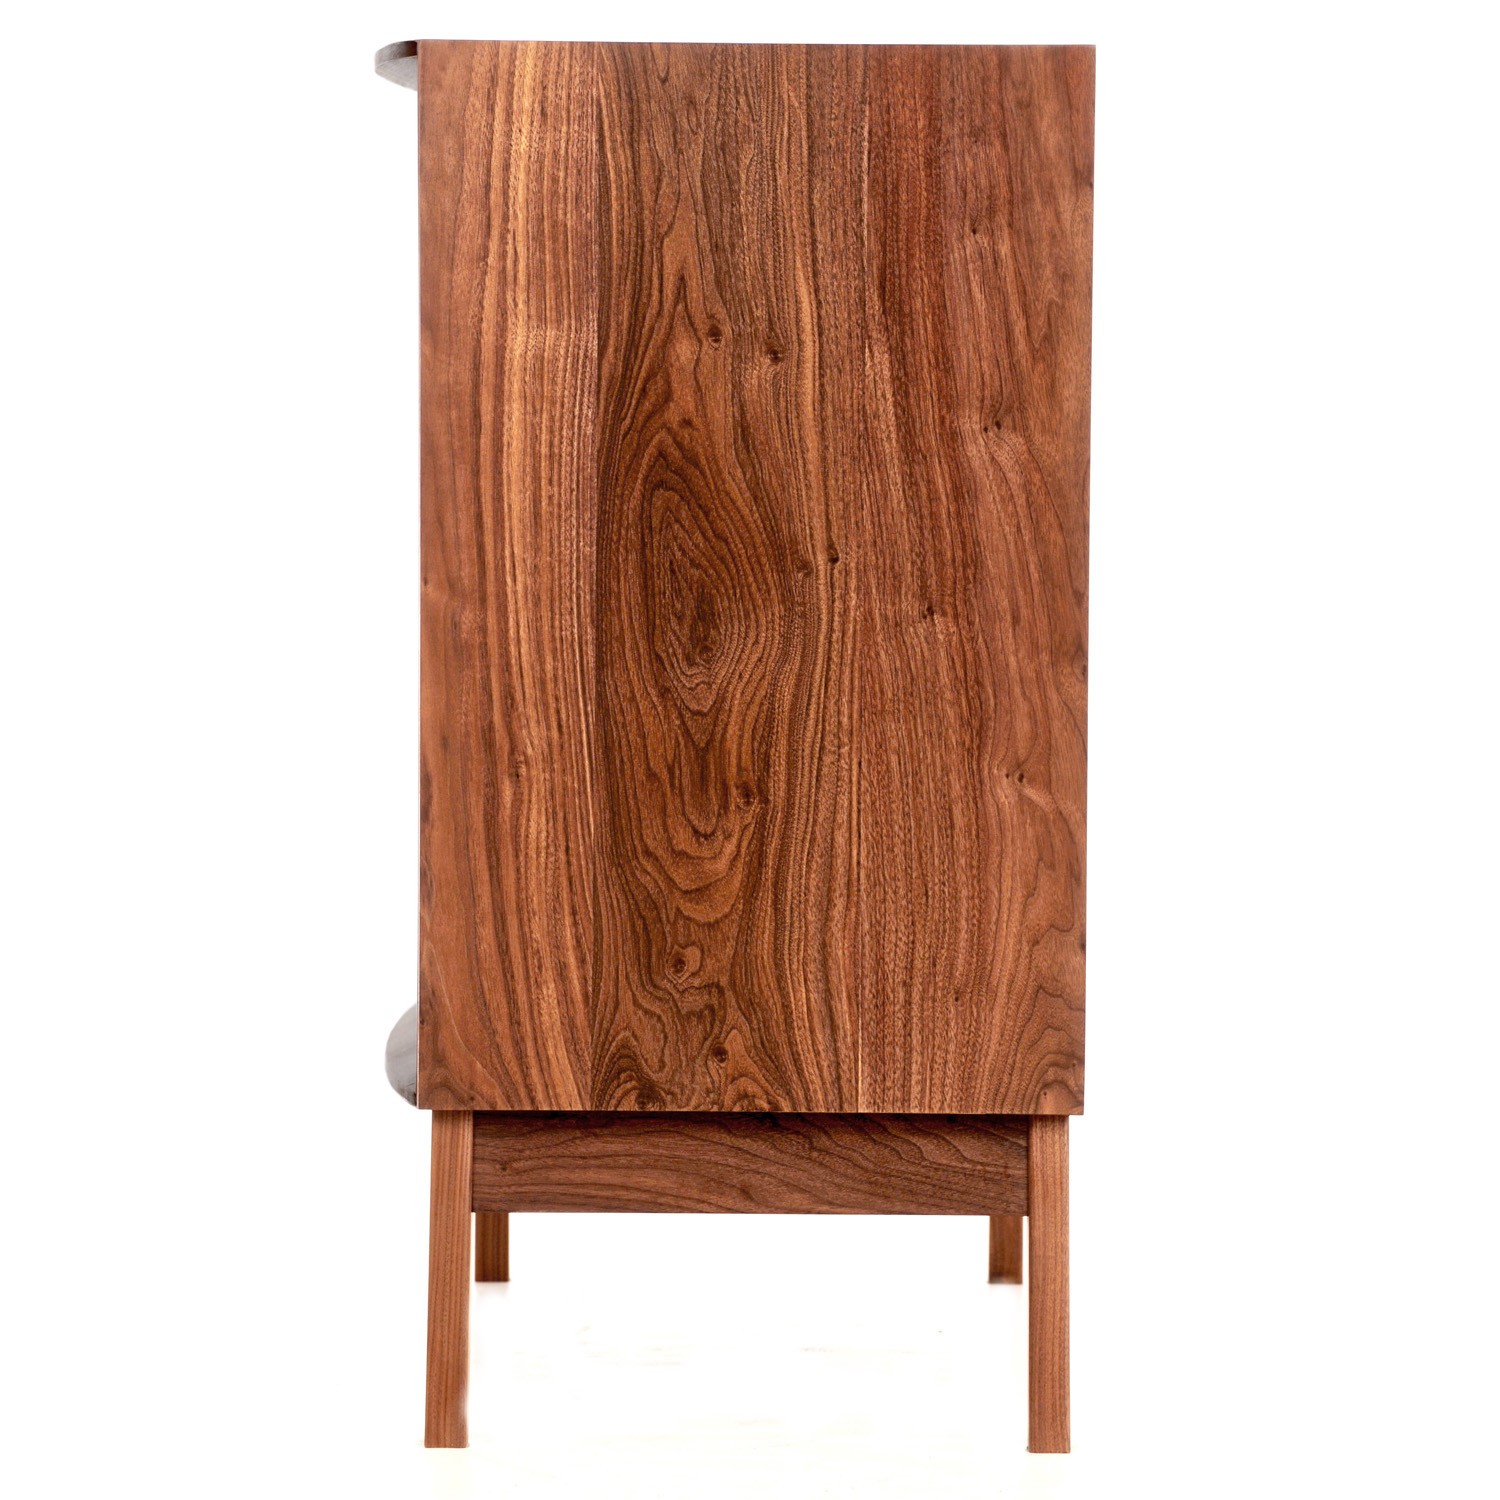 Acorn Chest of Drawers Side View